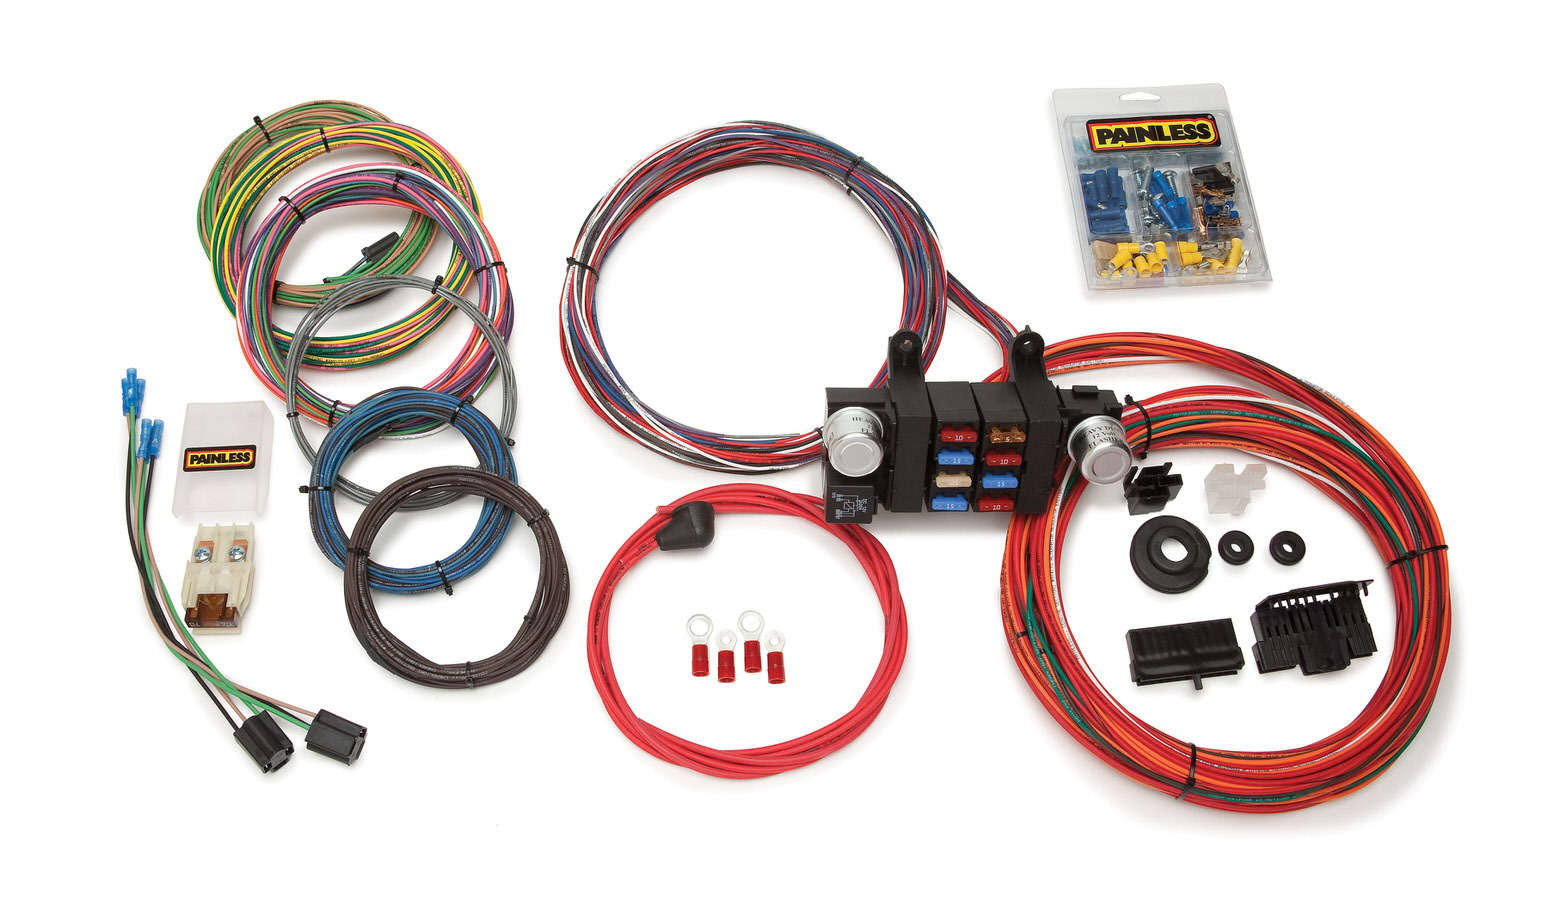 Painless Wiring 10308 Car Wiring Harness, Customizable, Complete, 18 Circuit, Universal, Kit